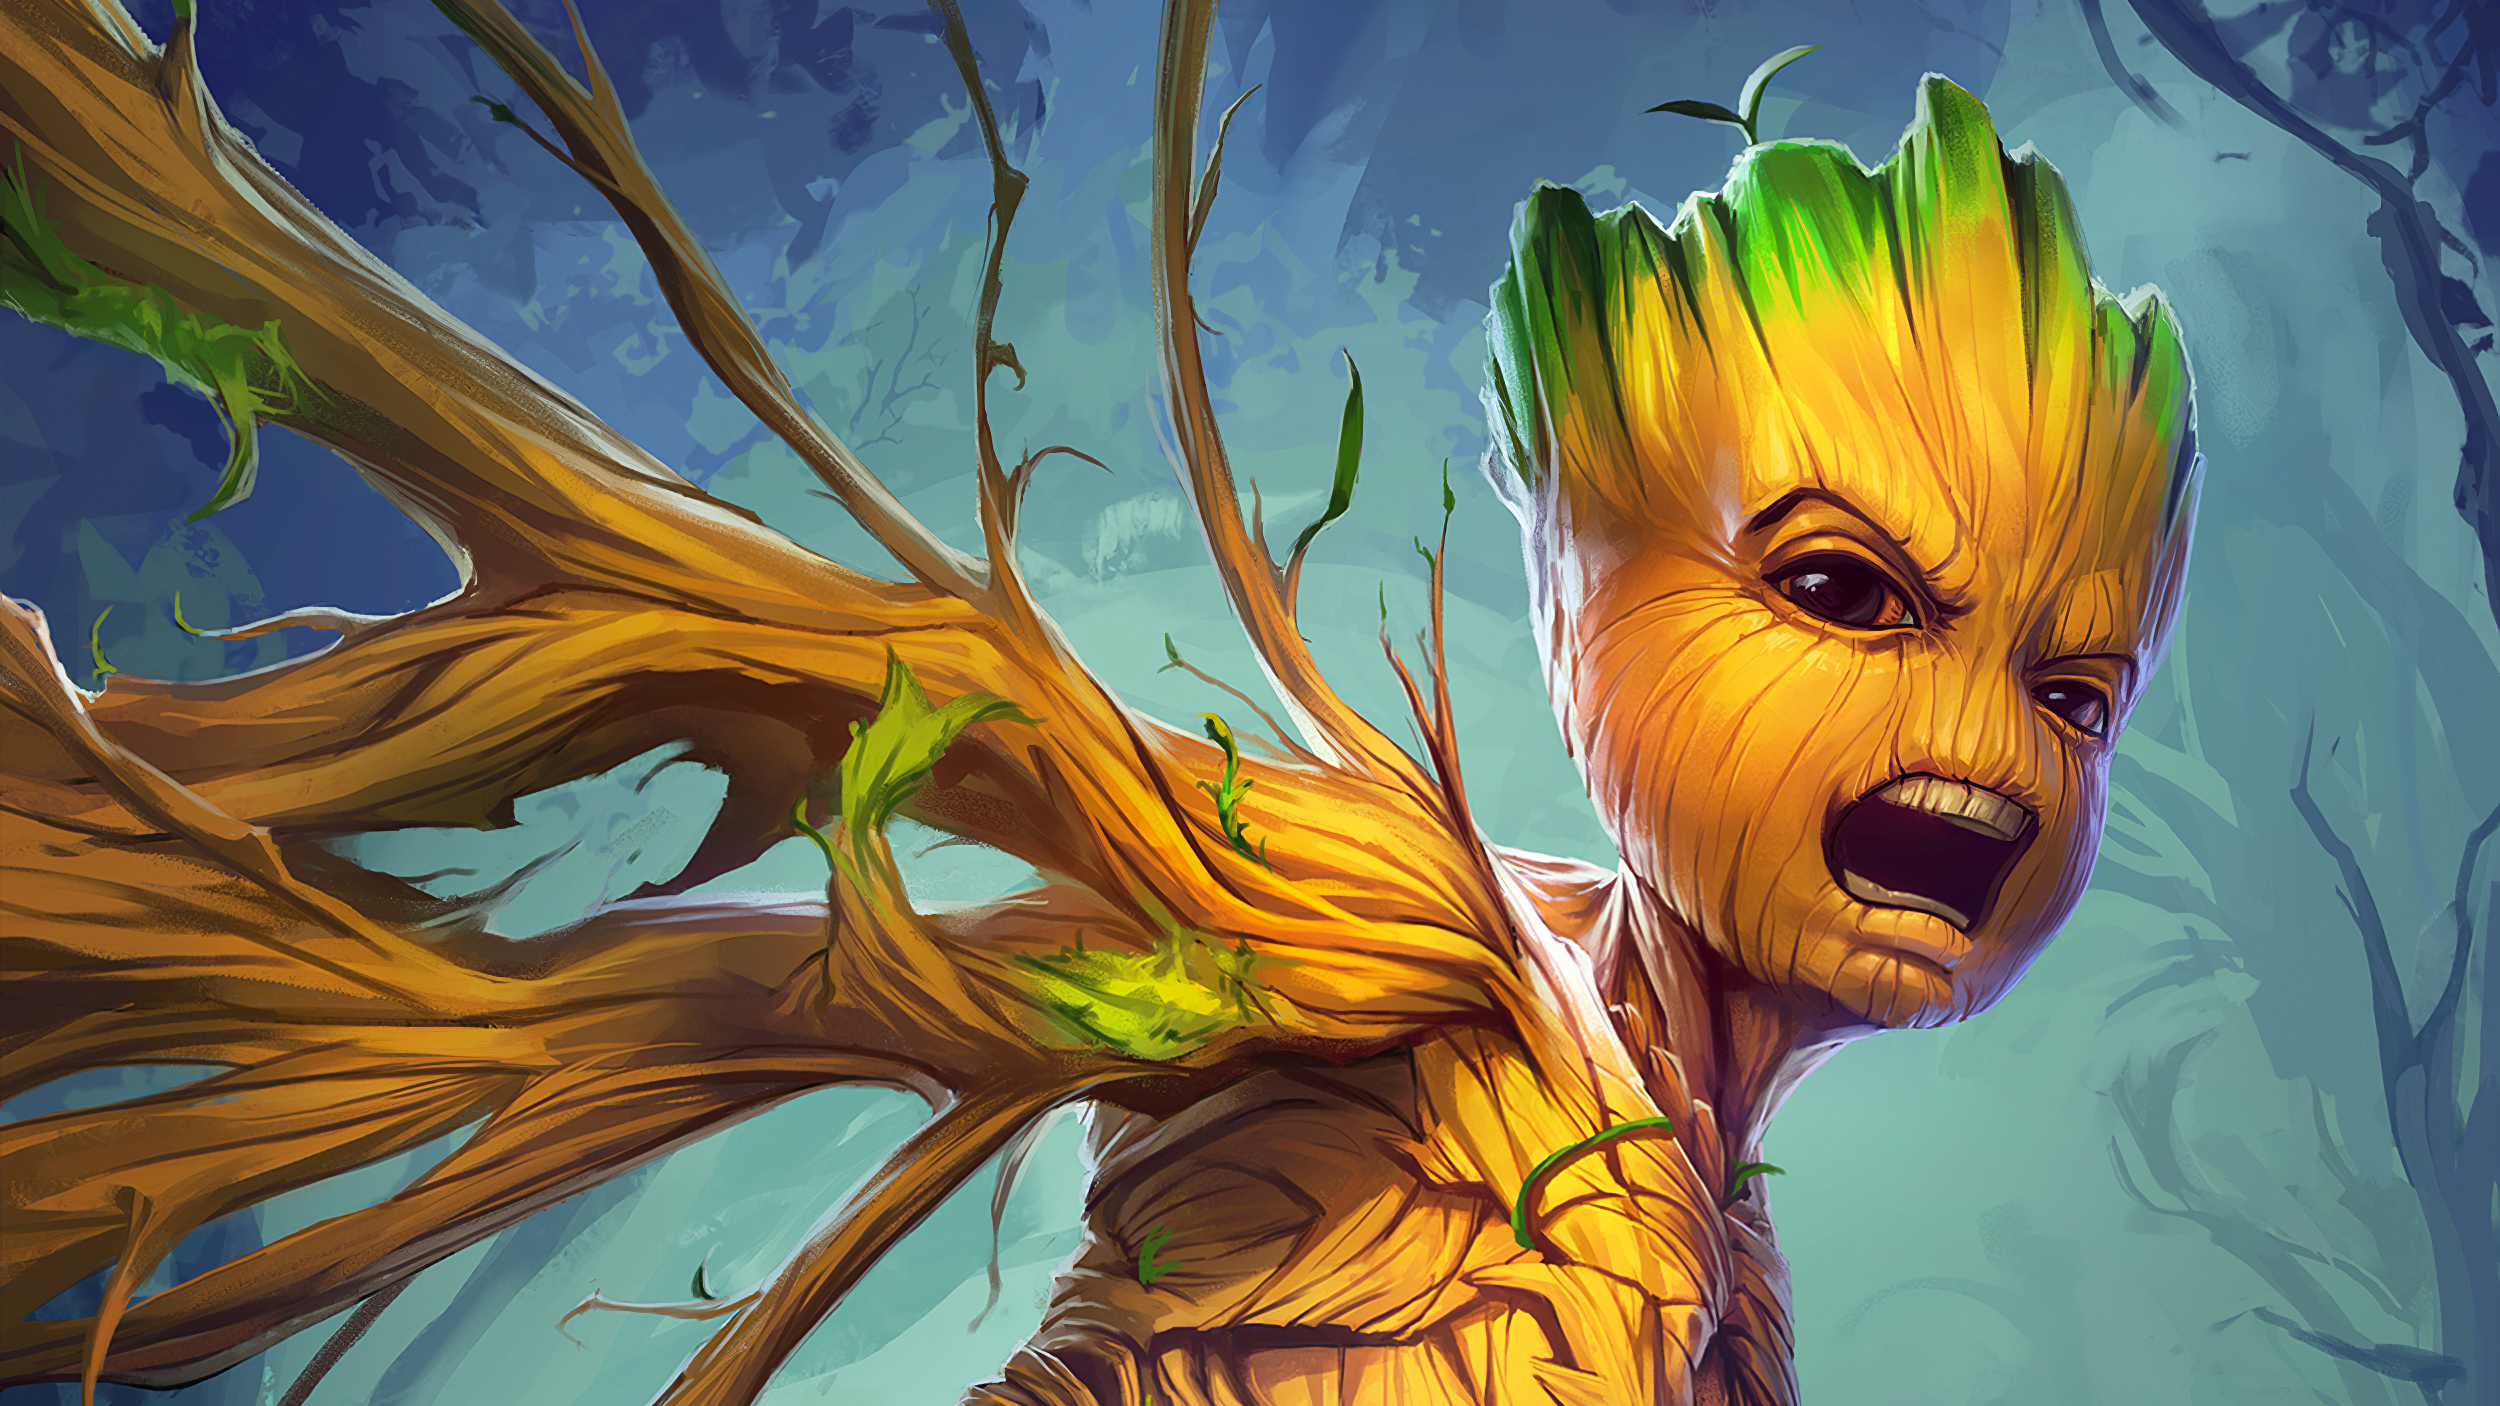 Wallpaper Groot from Guardians of the galaxy